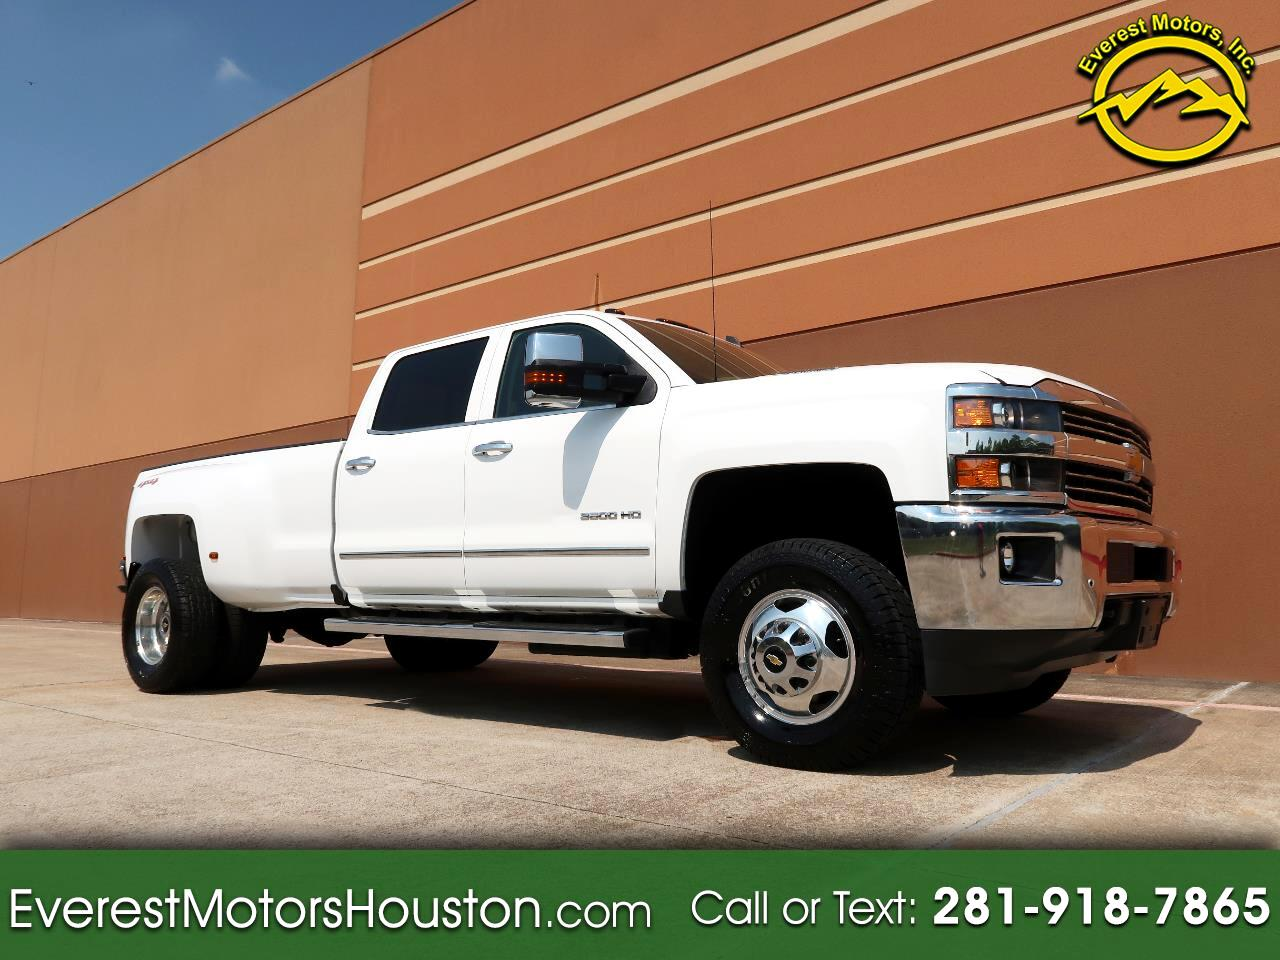 2015 Chevrolet Silverado 3500HD LTZ CREW CAB LONG BED DIESEL 4WD